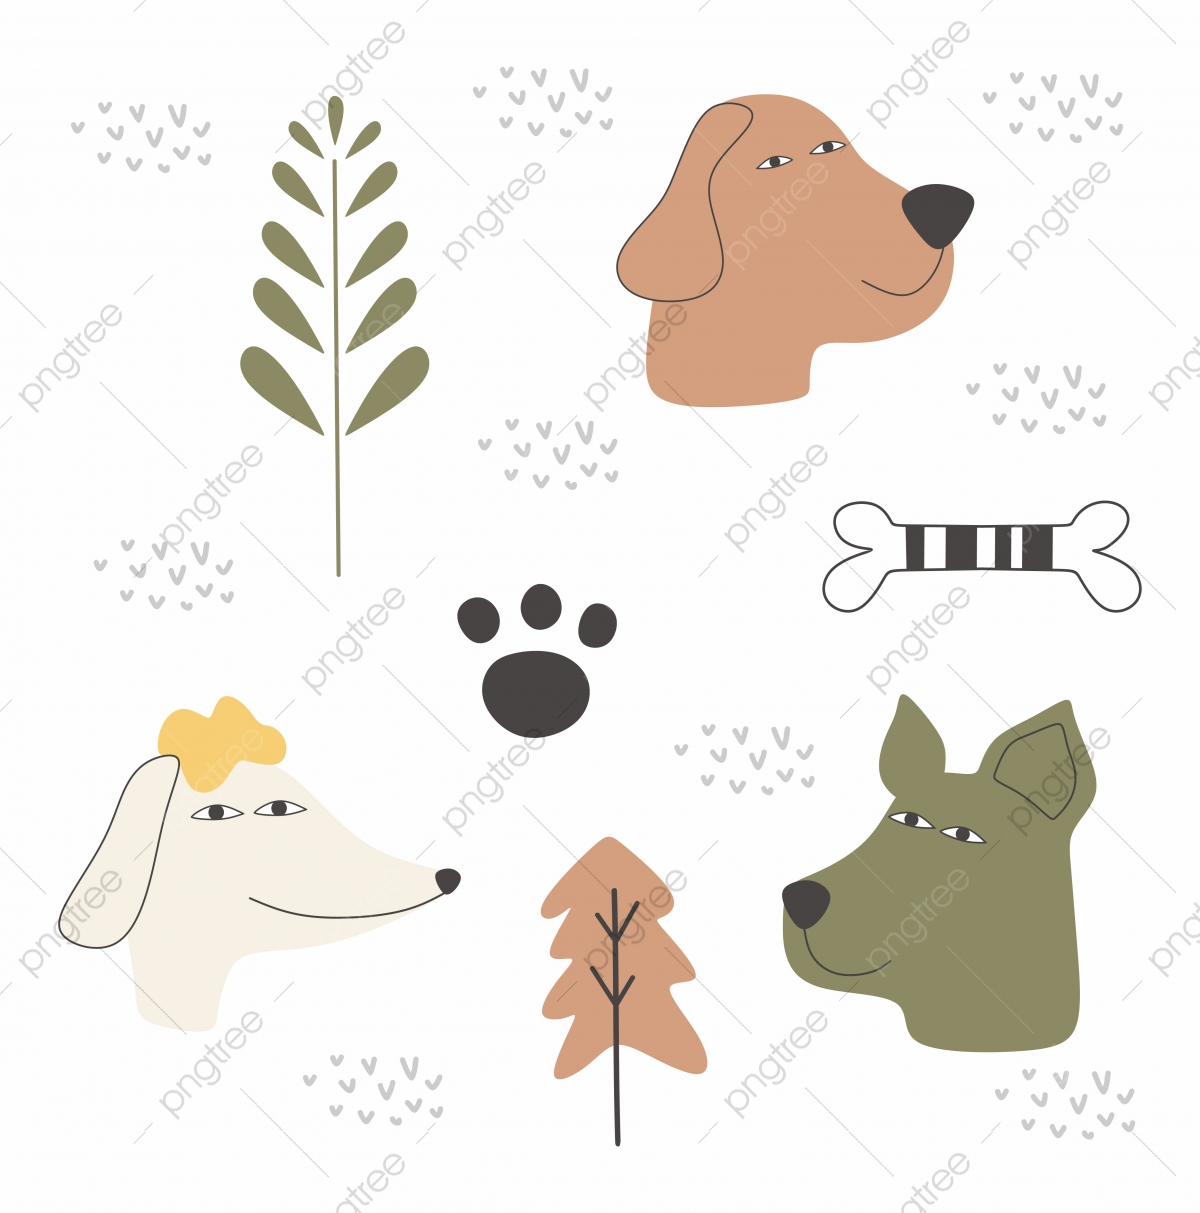 Dog Cartoon Drawing Set Design Vector Illustration Pack Collections Cute Characters Cute Vector Drawing Png And Vector With Transparent Background For Free Download